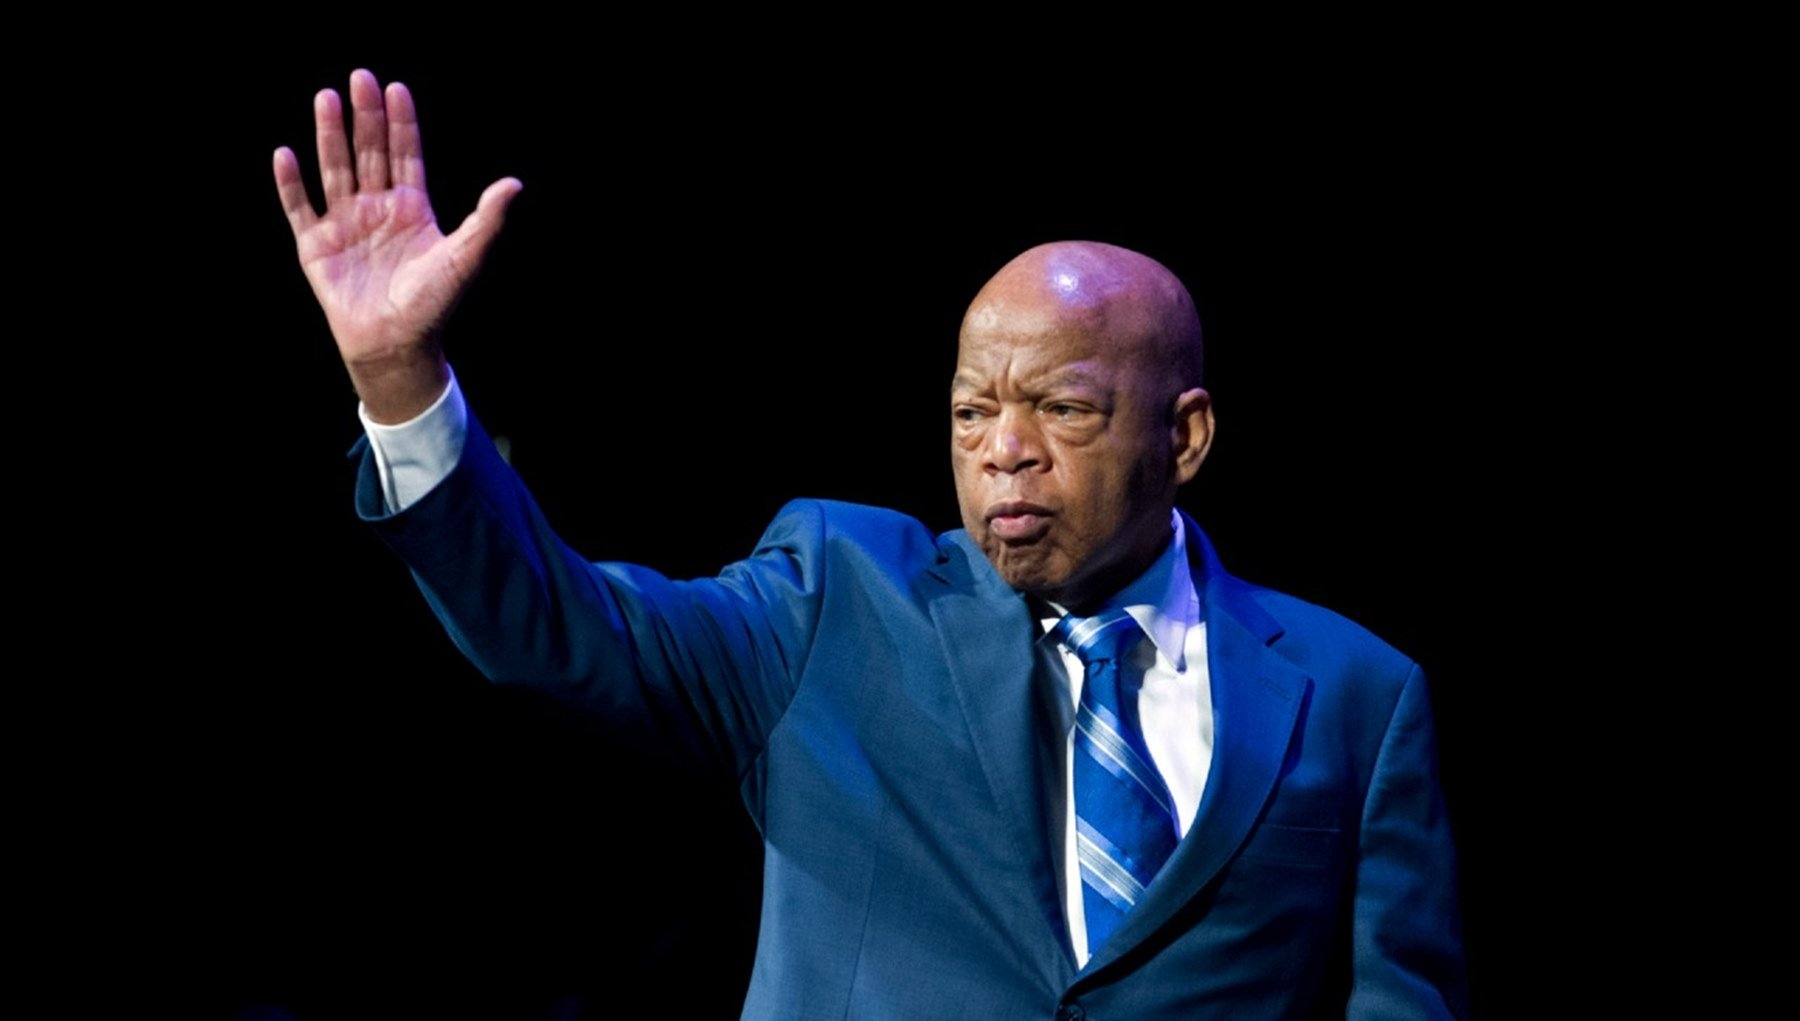 John Lewis, Congressman And Civil Rights Icon, Dead At 80 — Former President Barack Obama Leads Tribute To Youngest And Last Survivor Of The 'Big Six' Activists, Which Included Martin Luther King